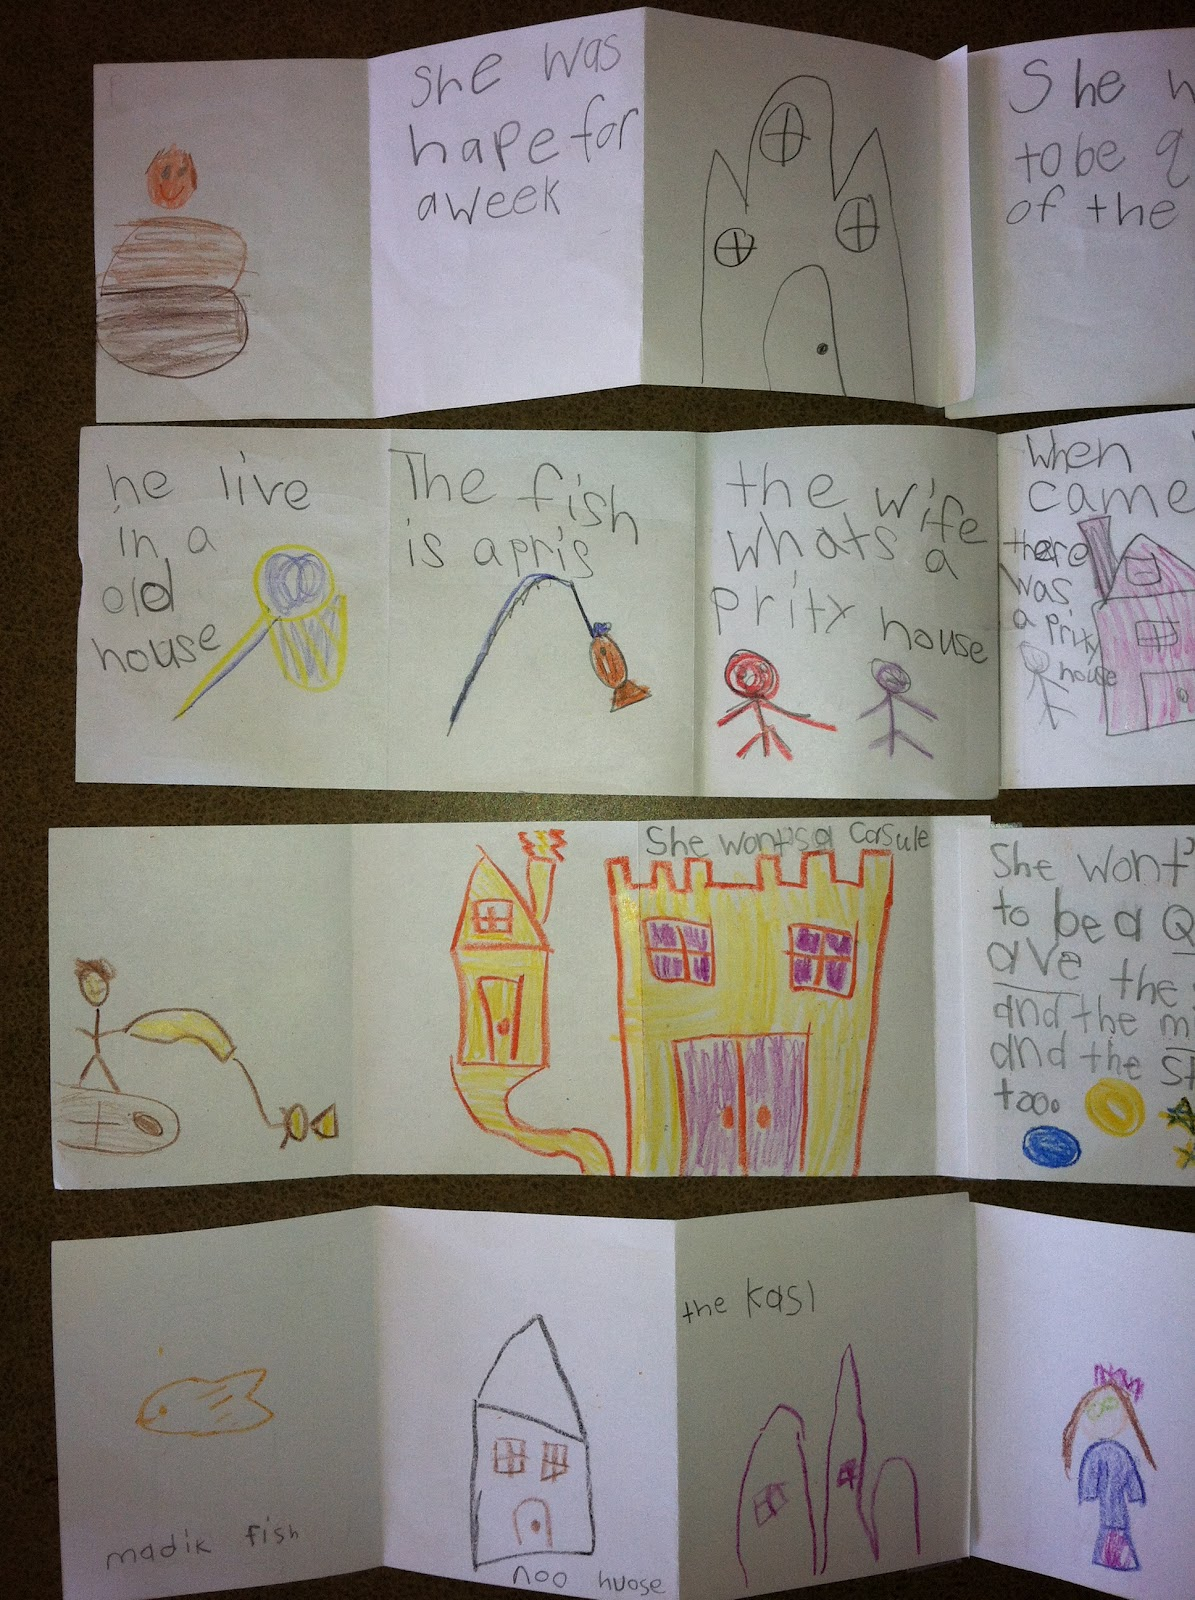 Strips of paper note story